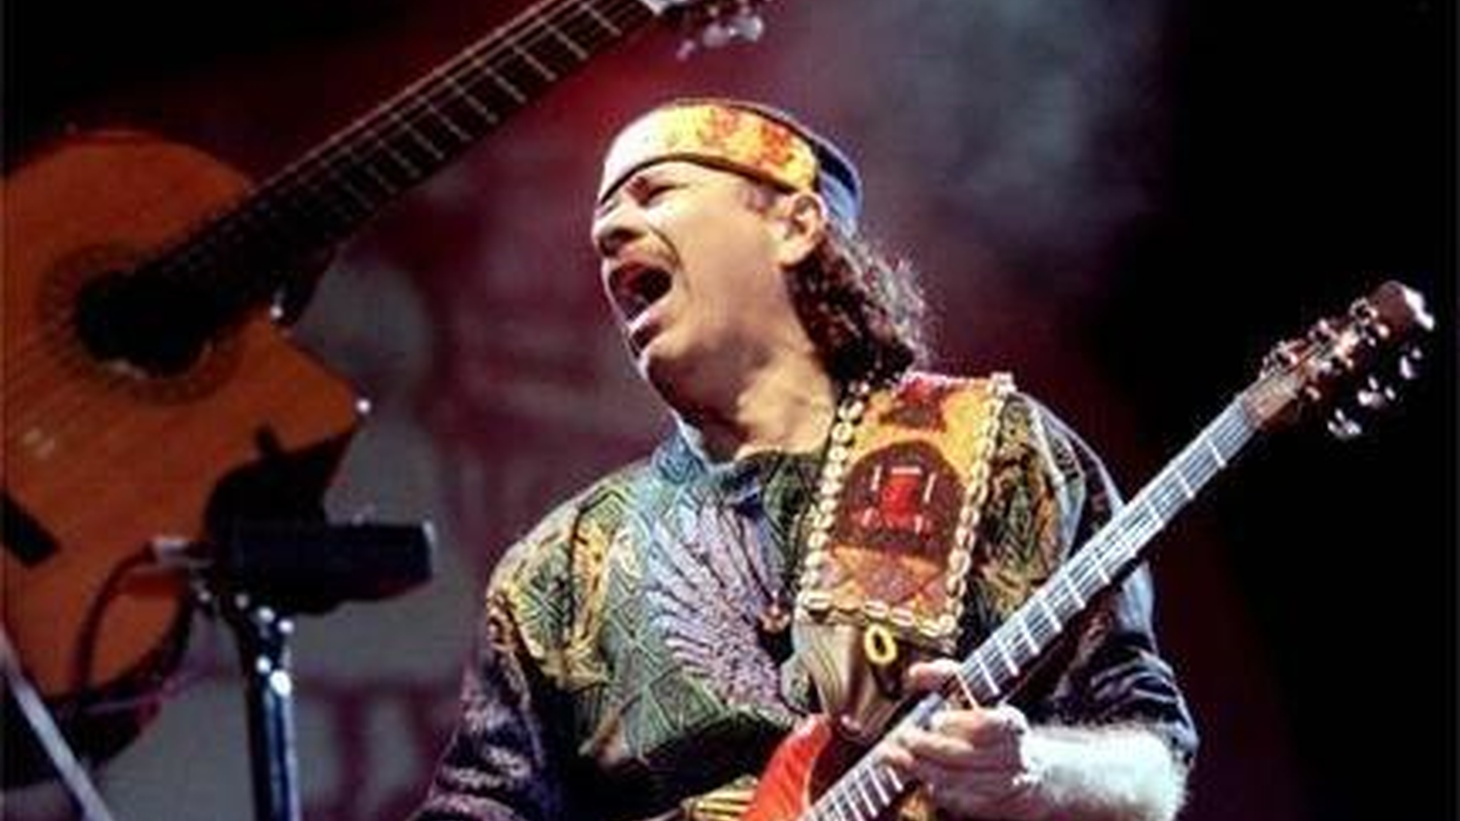 Playing music and being a force for change have kept Carlos Santana going for 40 years. We highlight tracks reflecting his deep spirituality. (Airs 3-4pm and preempts All Things Considered)